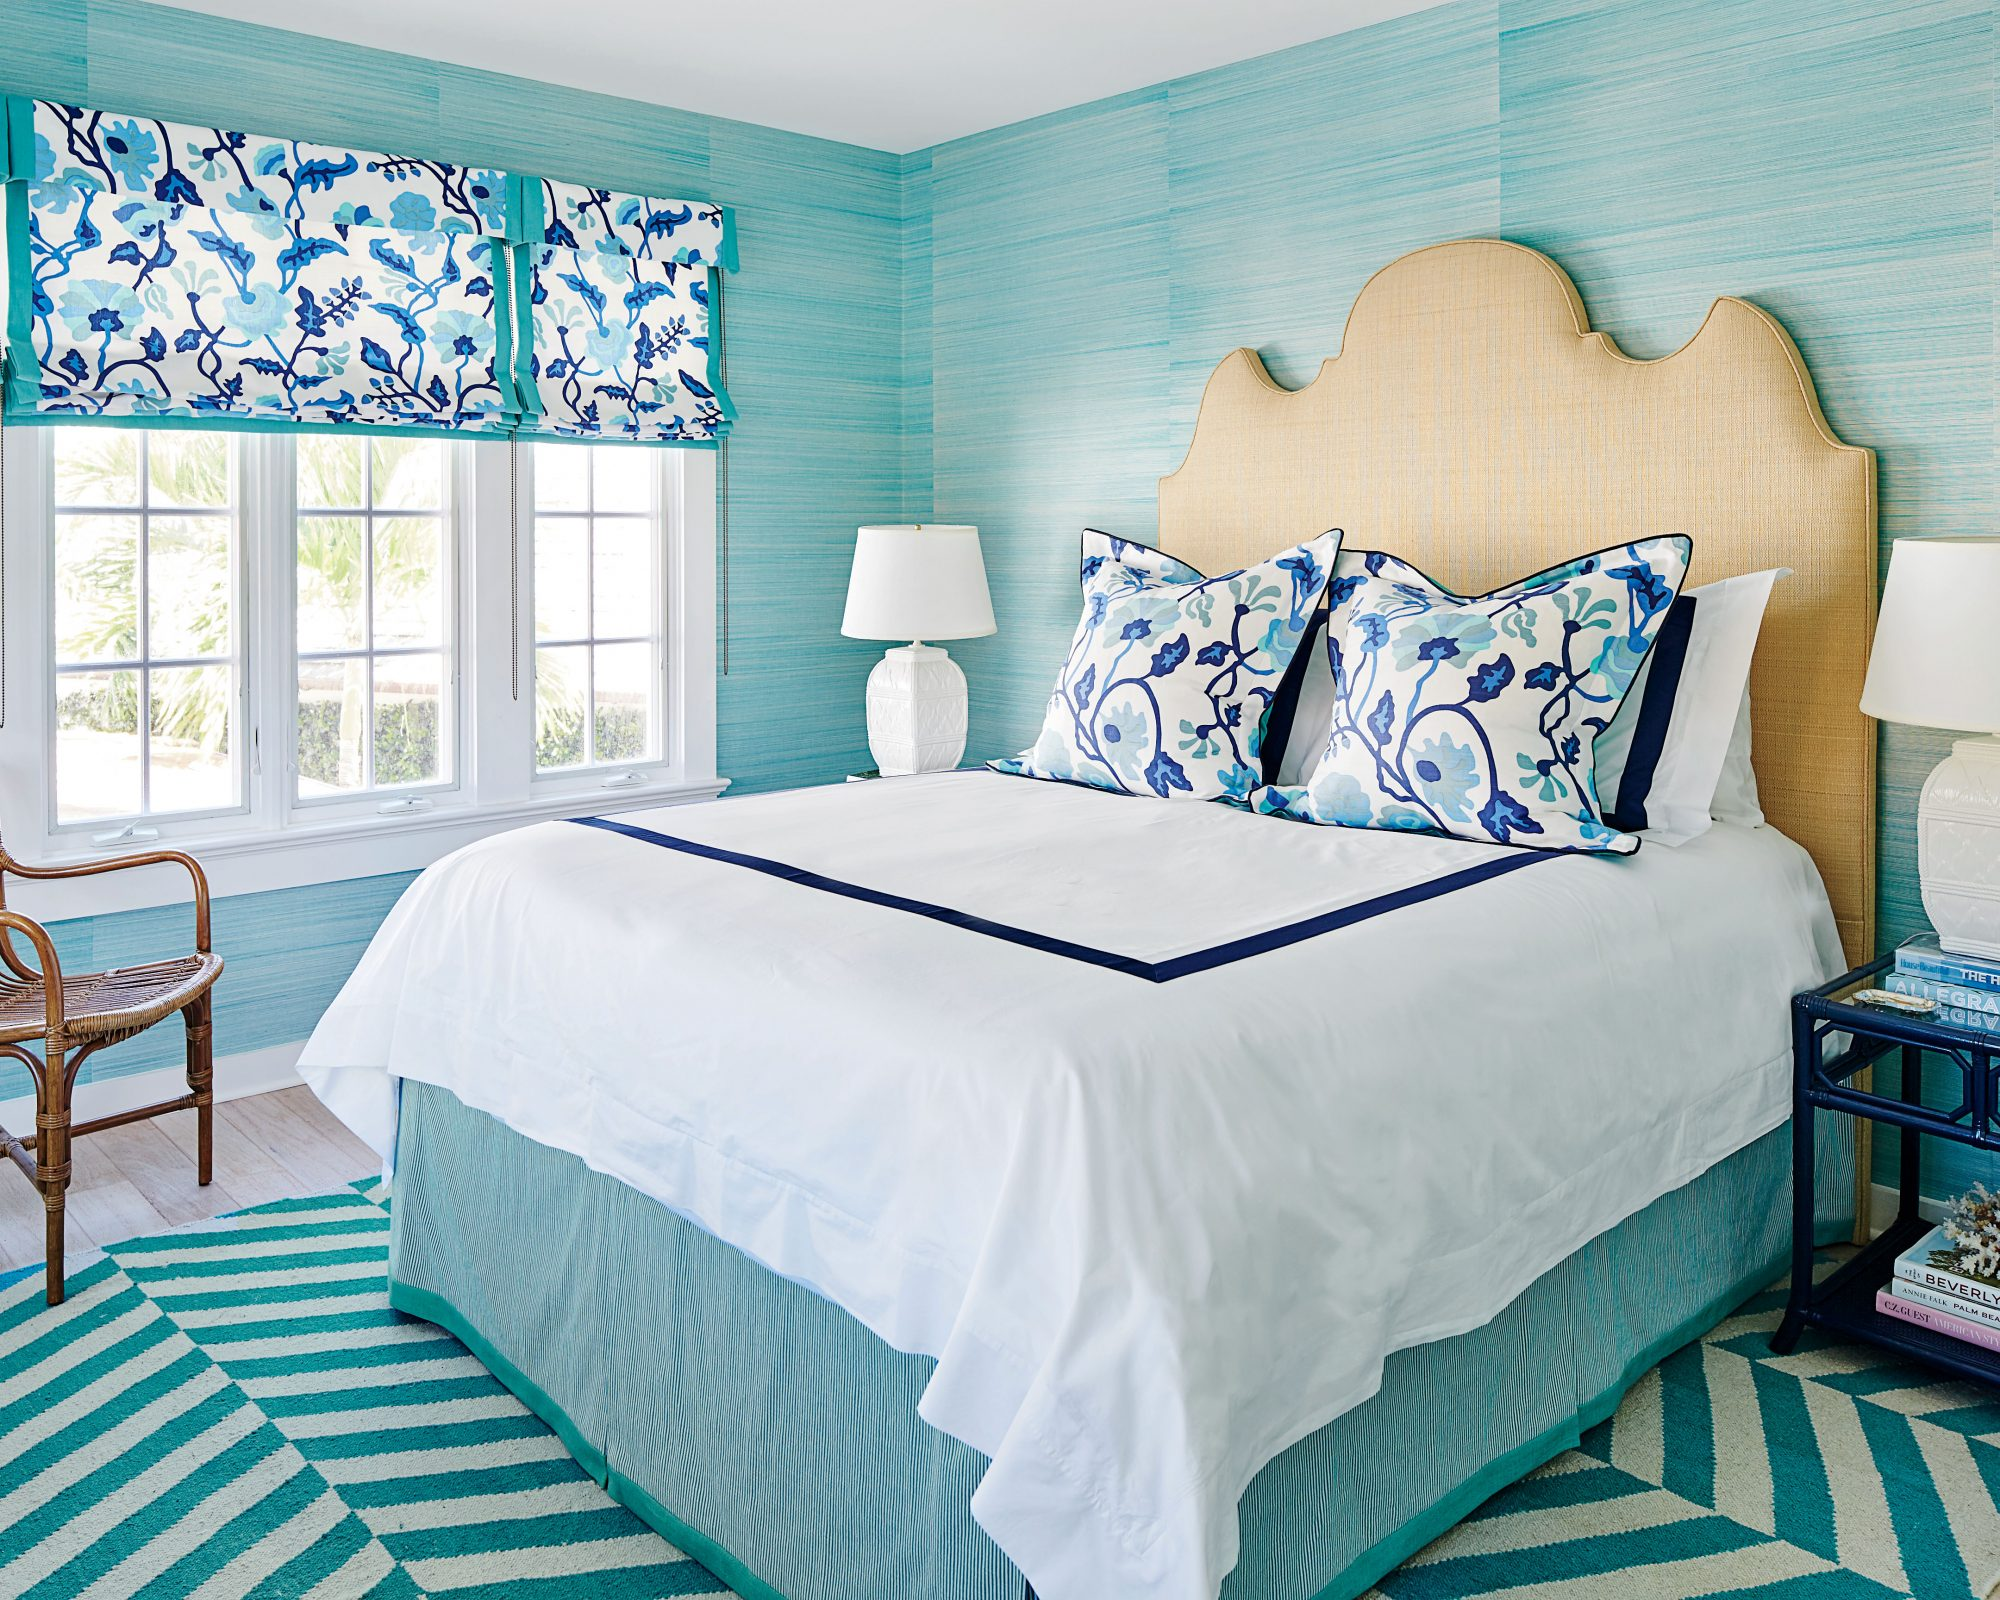 Lindsey Coral Harper Windsor, FL Makeover Guest Bedroom Teal